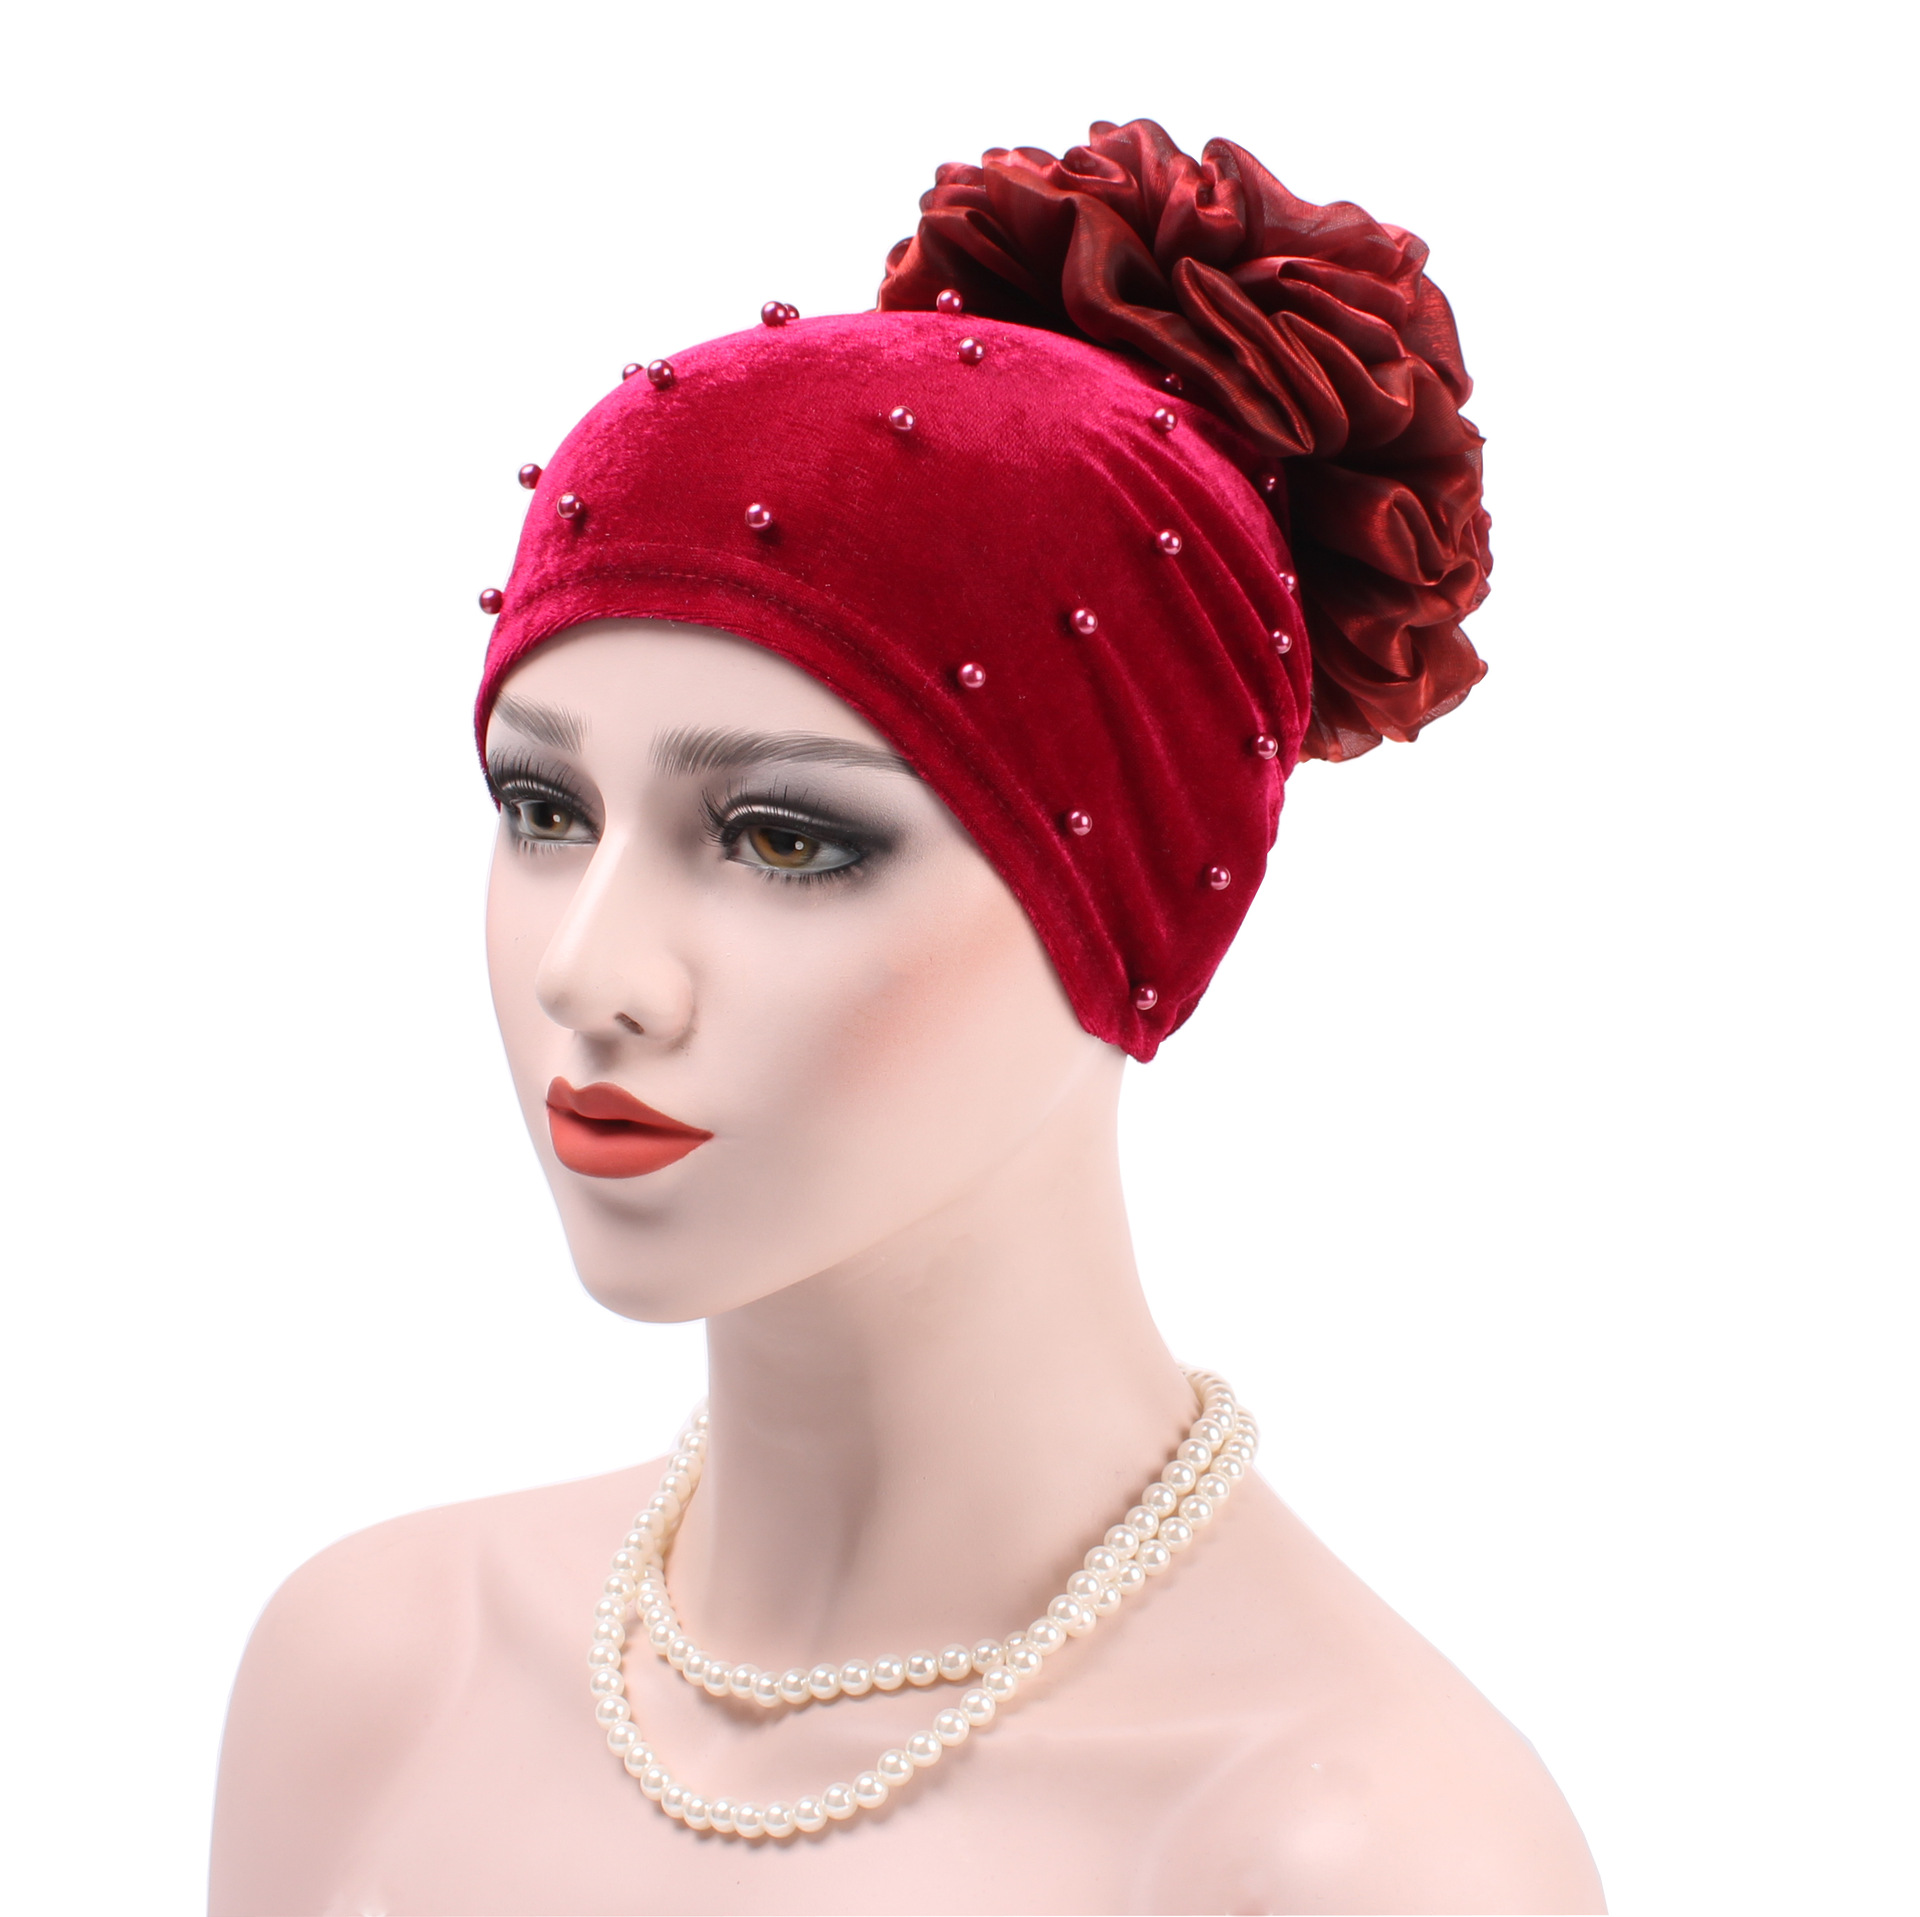 New  Muslim Dress Women Baotou Hat Pure Color Cotton Velveteen Nail Pearl Hat With Flowers After The Hood Cap Turban Hijab